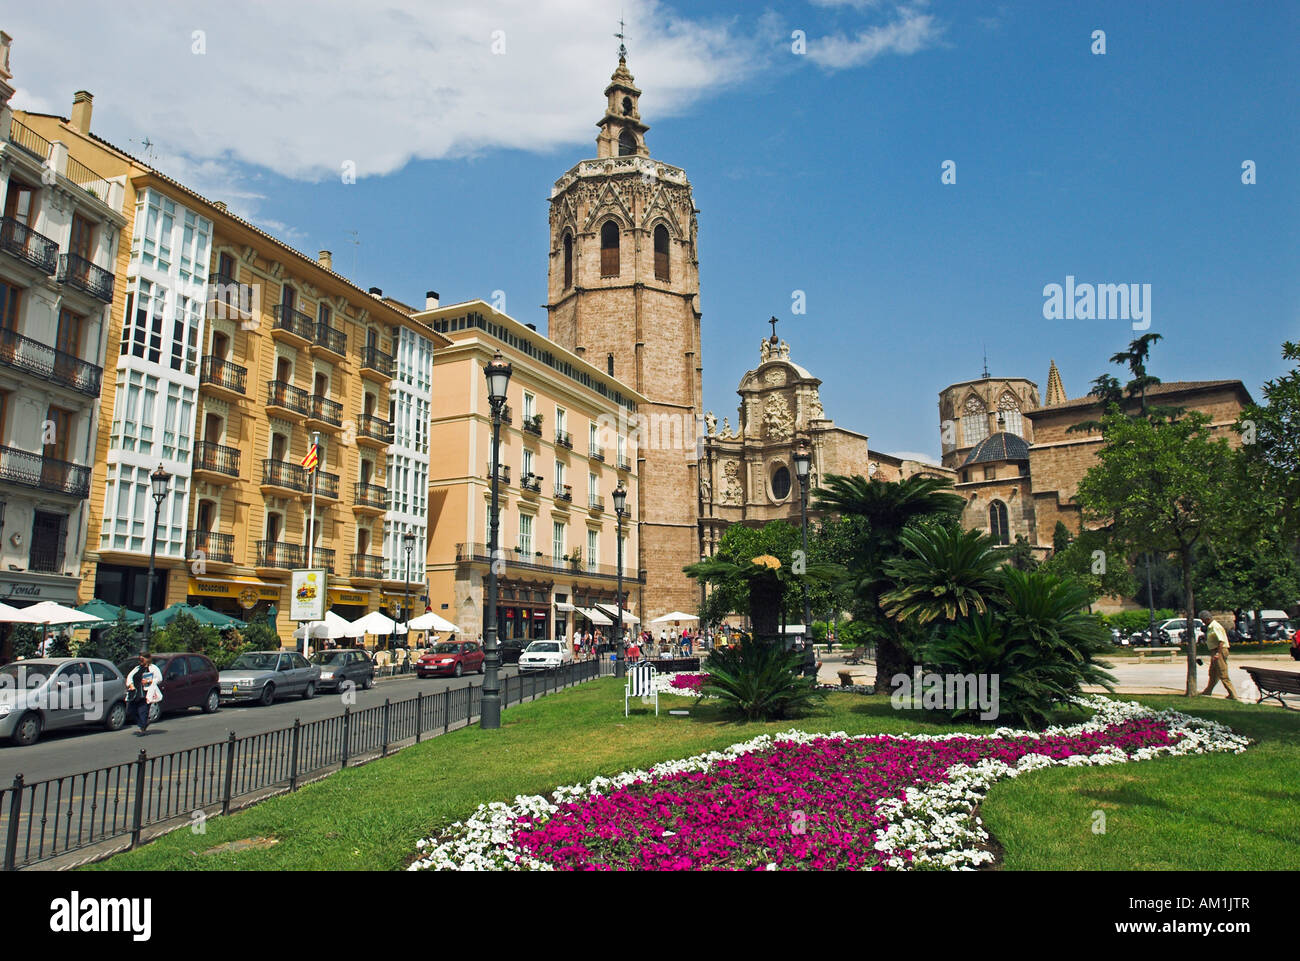 Plaza De La Reina And Cathedral Tower City Of Valencia Spain Stock